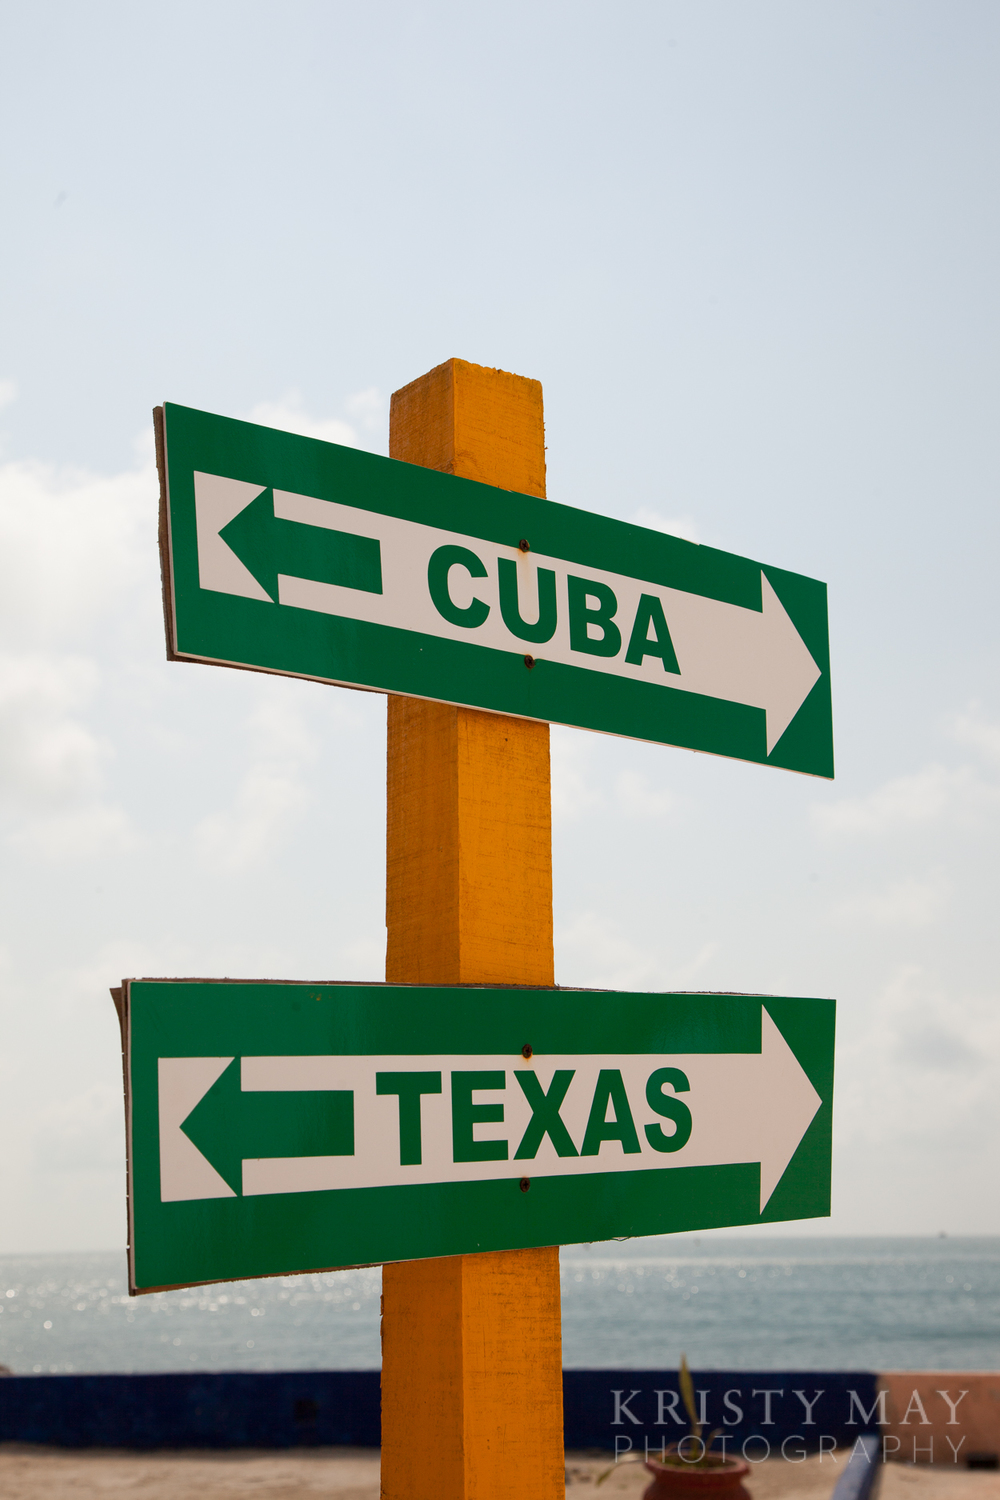 Cuba and Texas sign